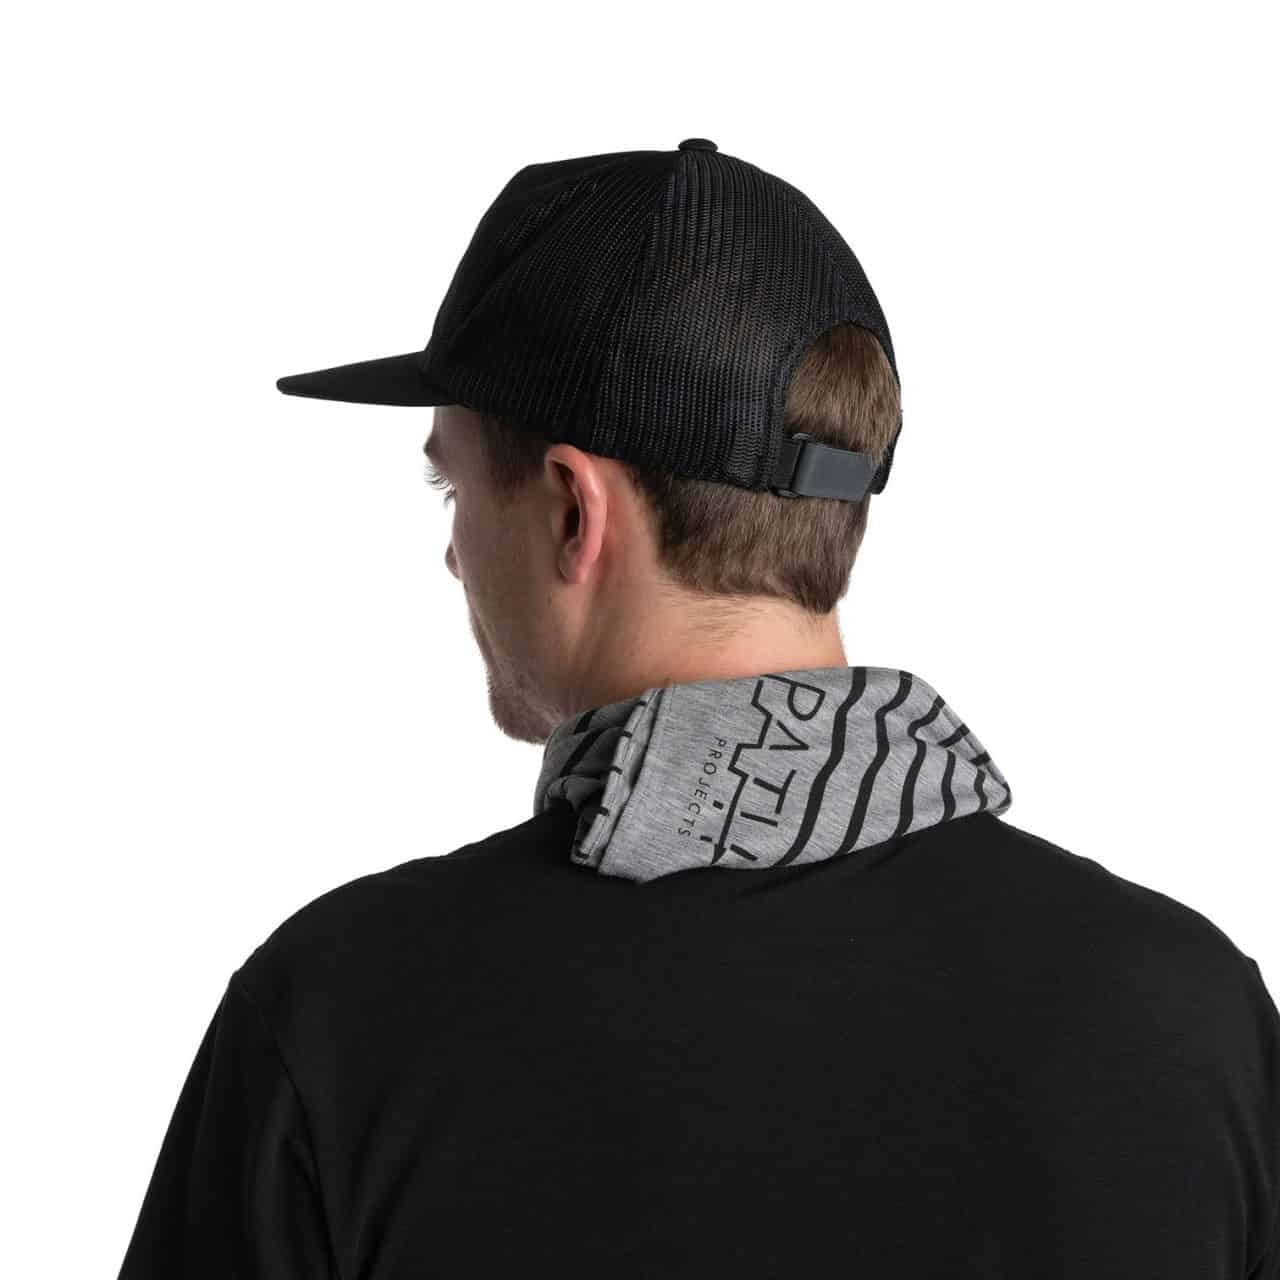 is the pinyon the best bandana?